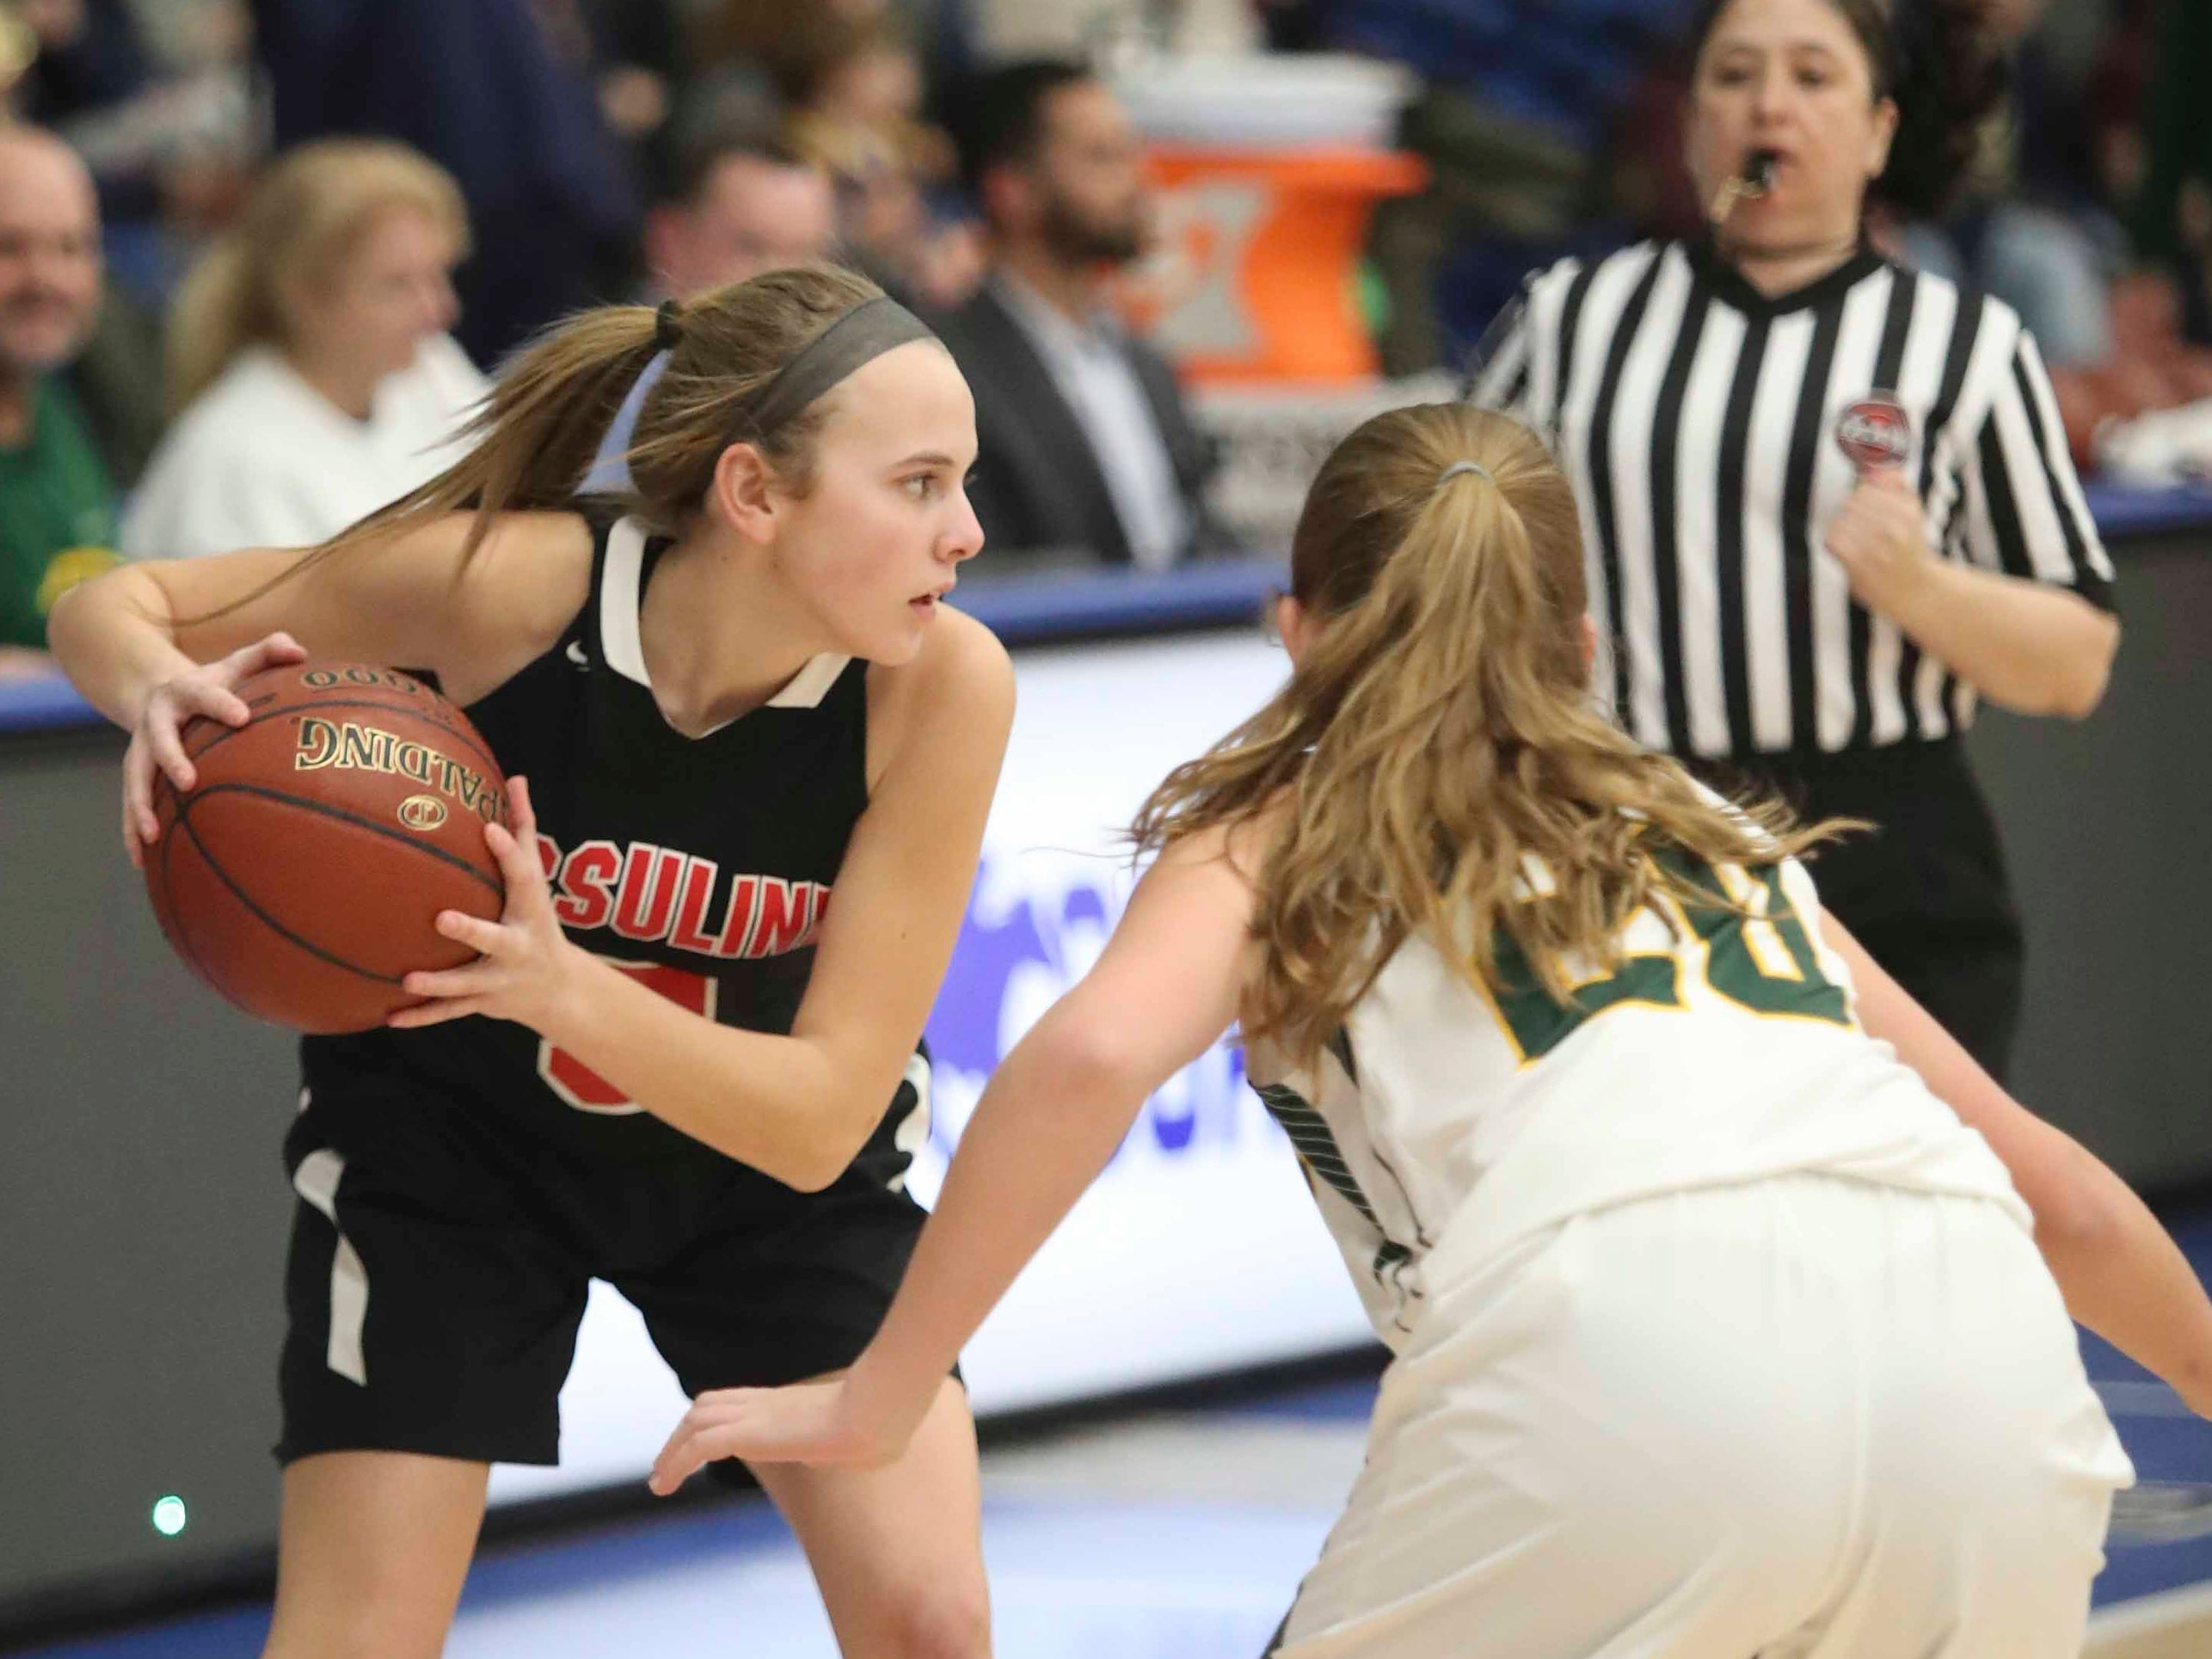 Ursuline's Avery Burns looks past St. Mark's Madalyn Lenick in the SL24 Memorial Basketball Classic at the 76ers Fieldhouse in Wilmington Friday.